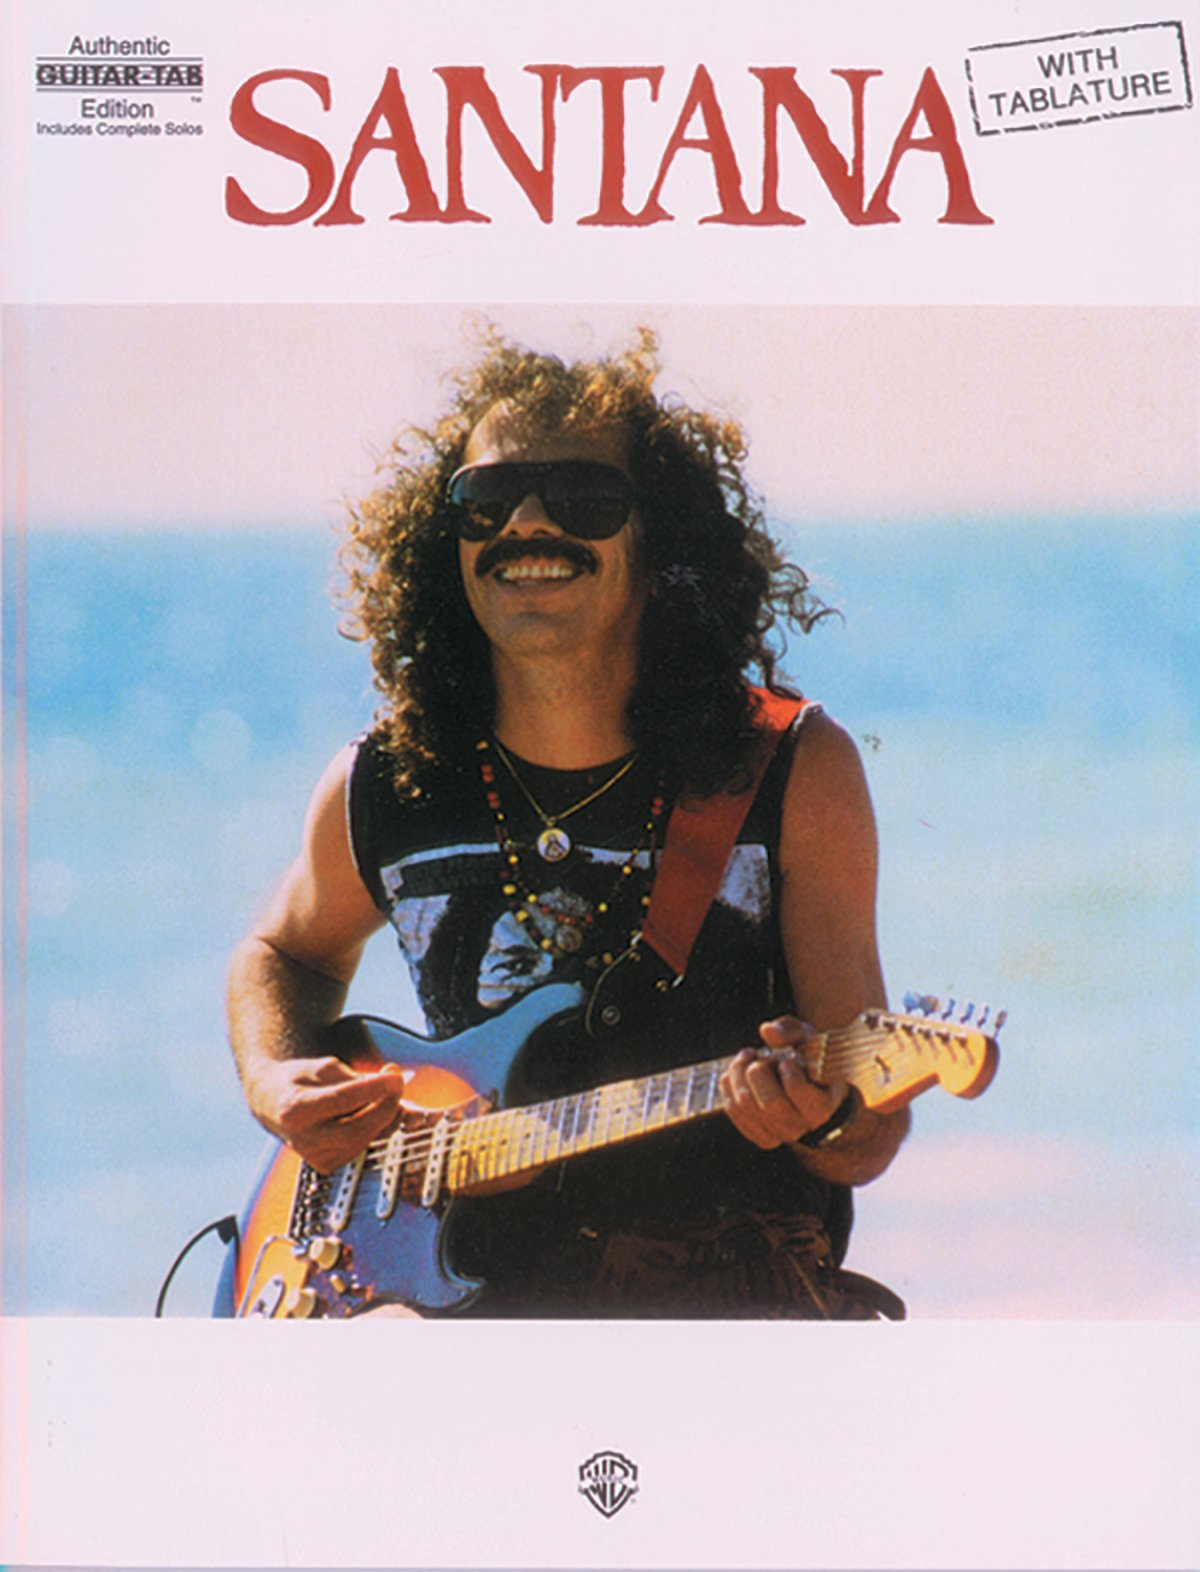 Santana Authentic Guitar Tab Carlos Santana 9780897245166 Amazon